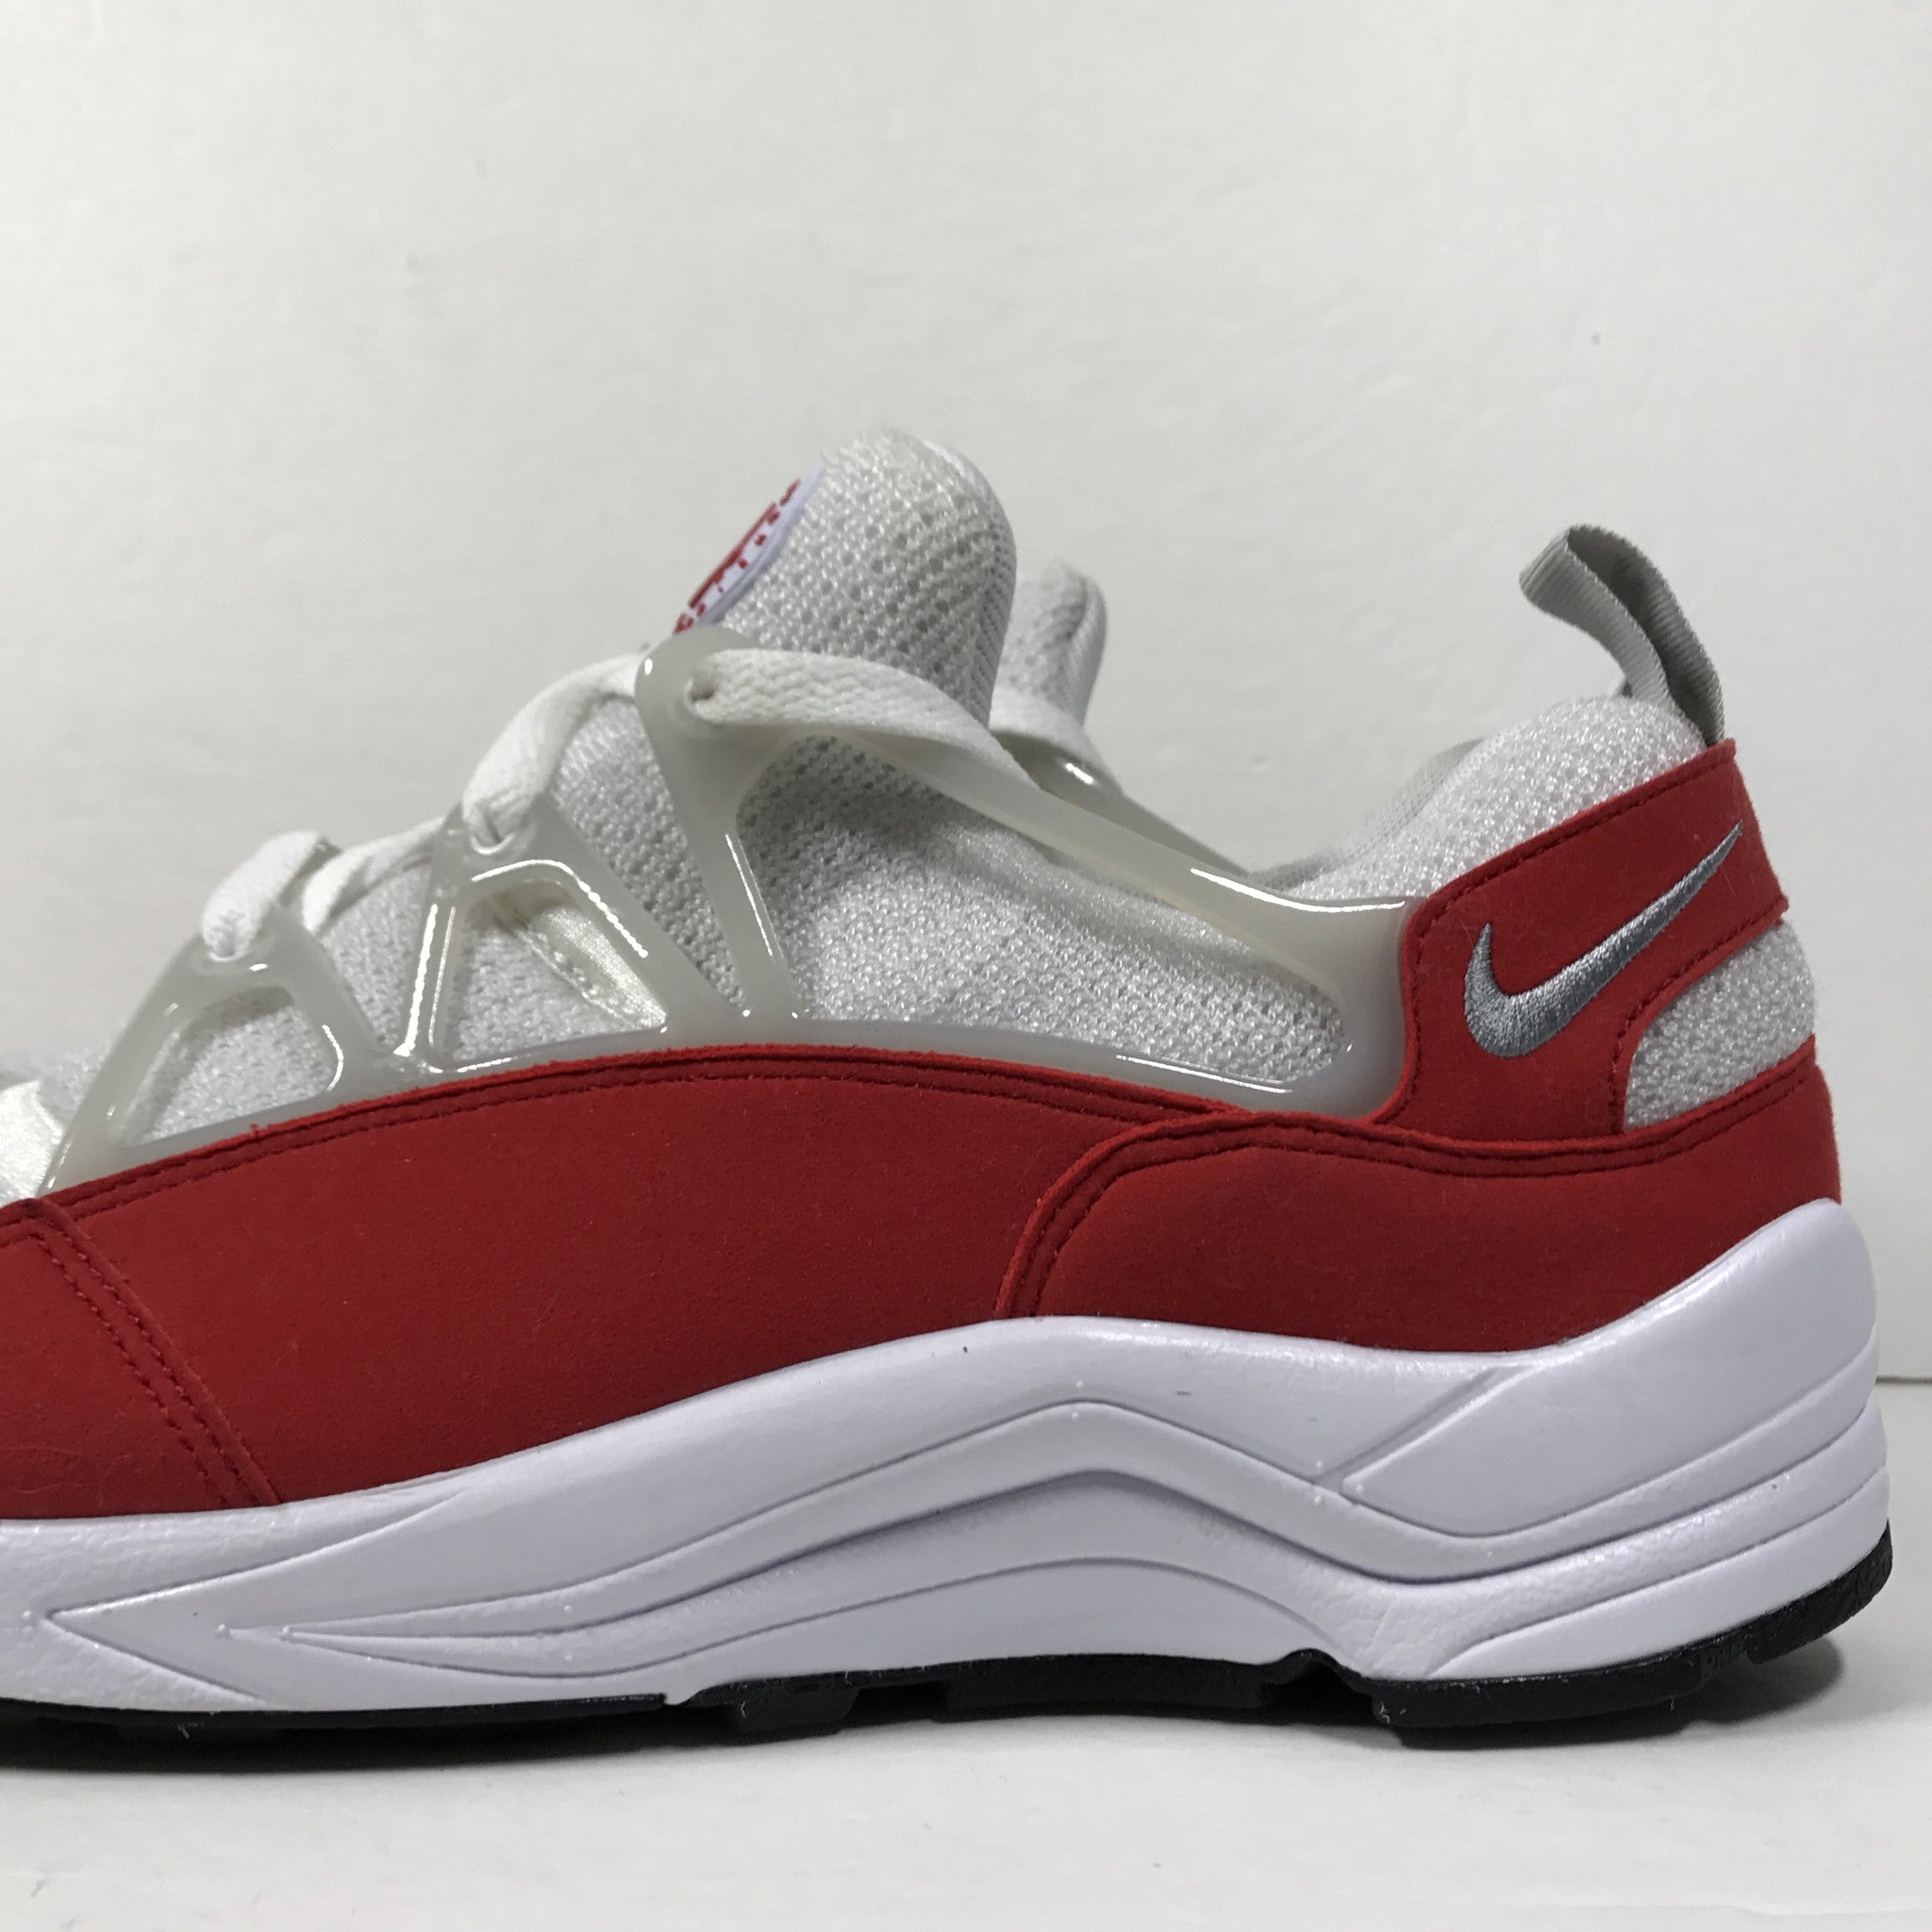 DS Nike Air Huarache Light Red Size 10.5 - DOPEFOOT  - 4